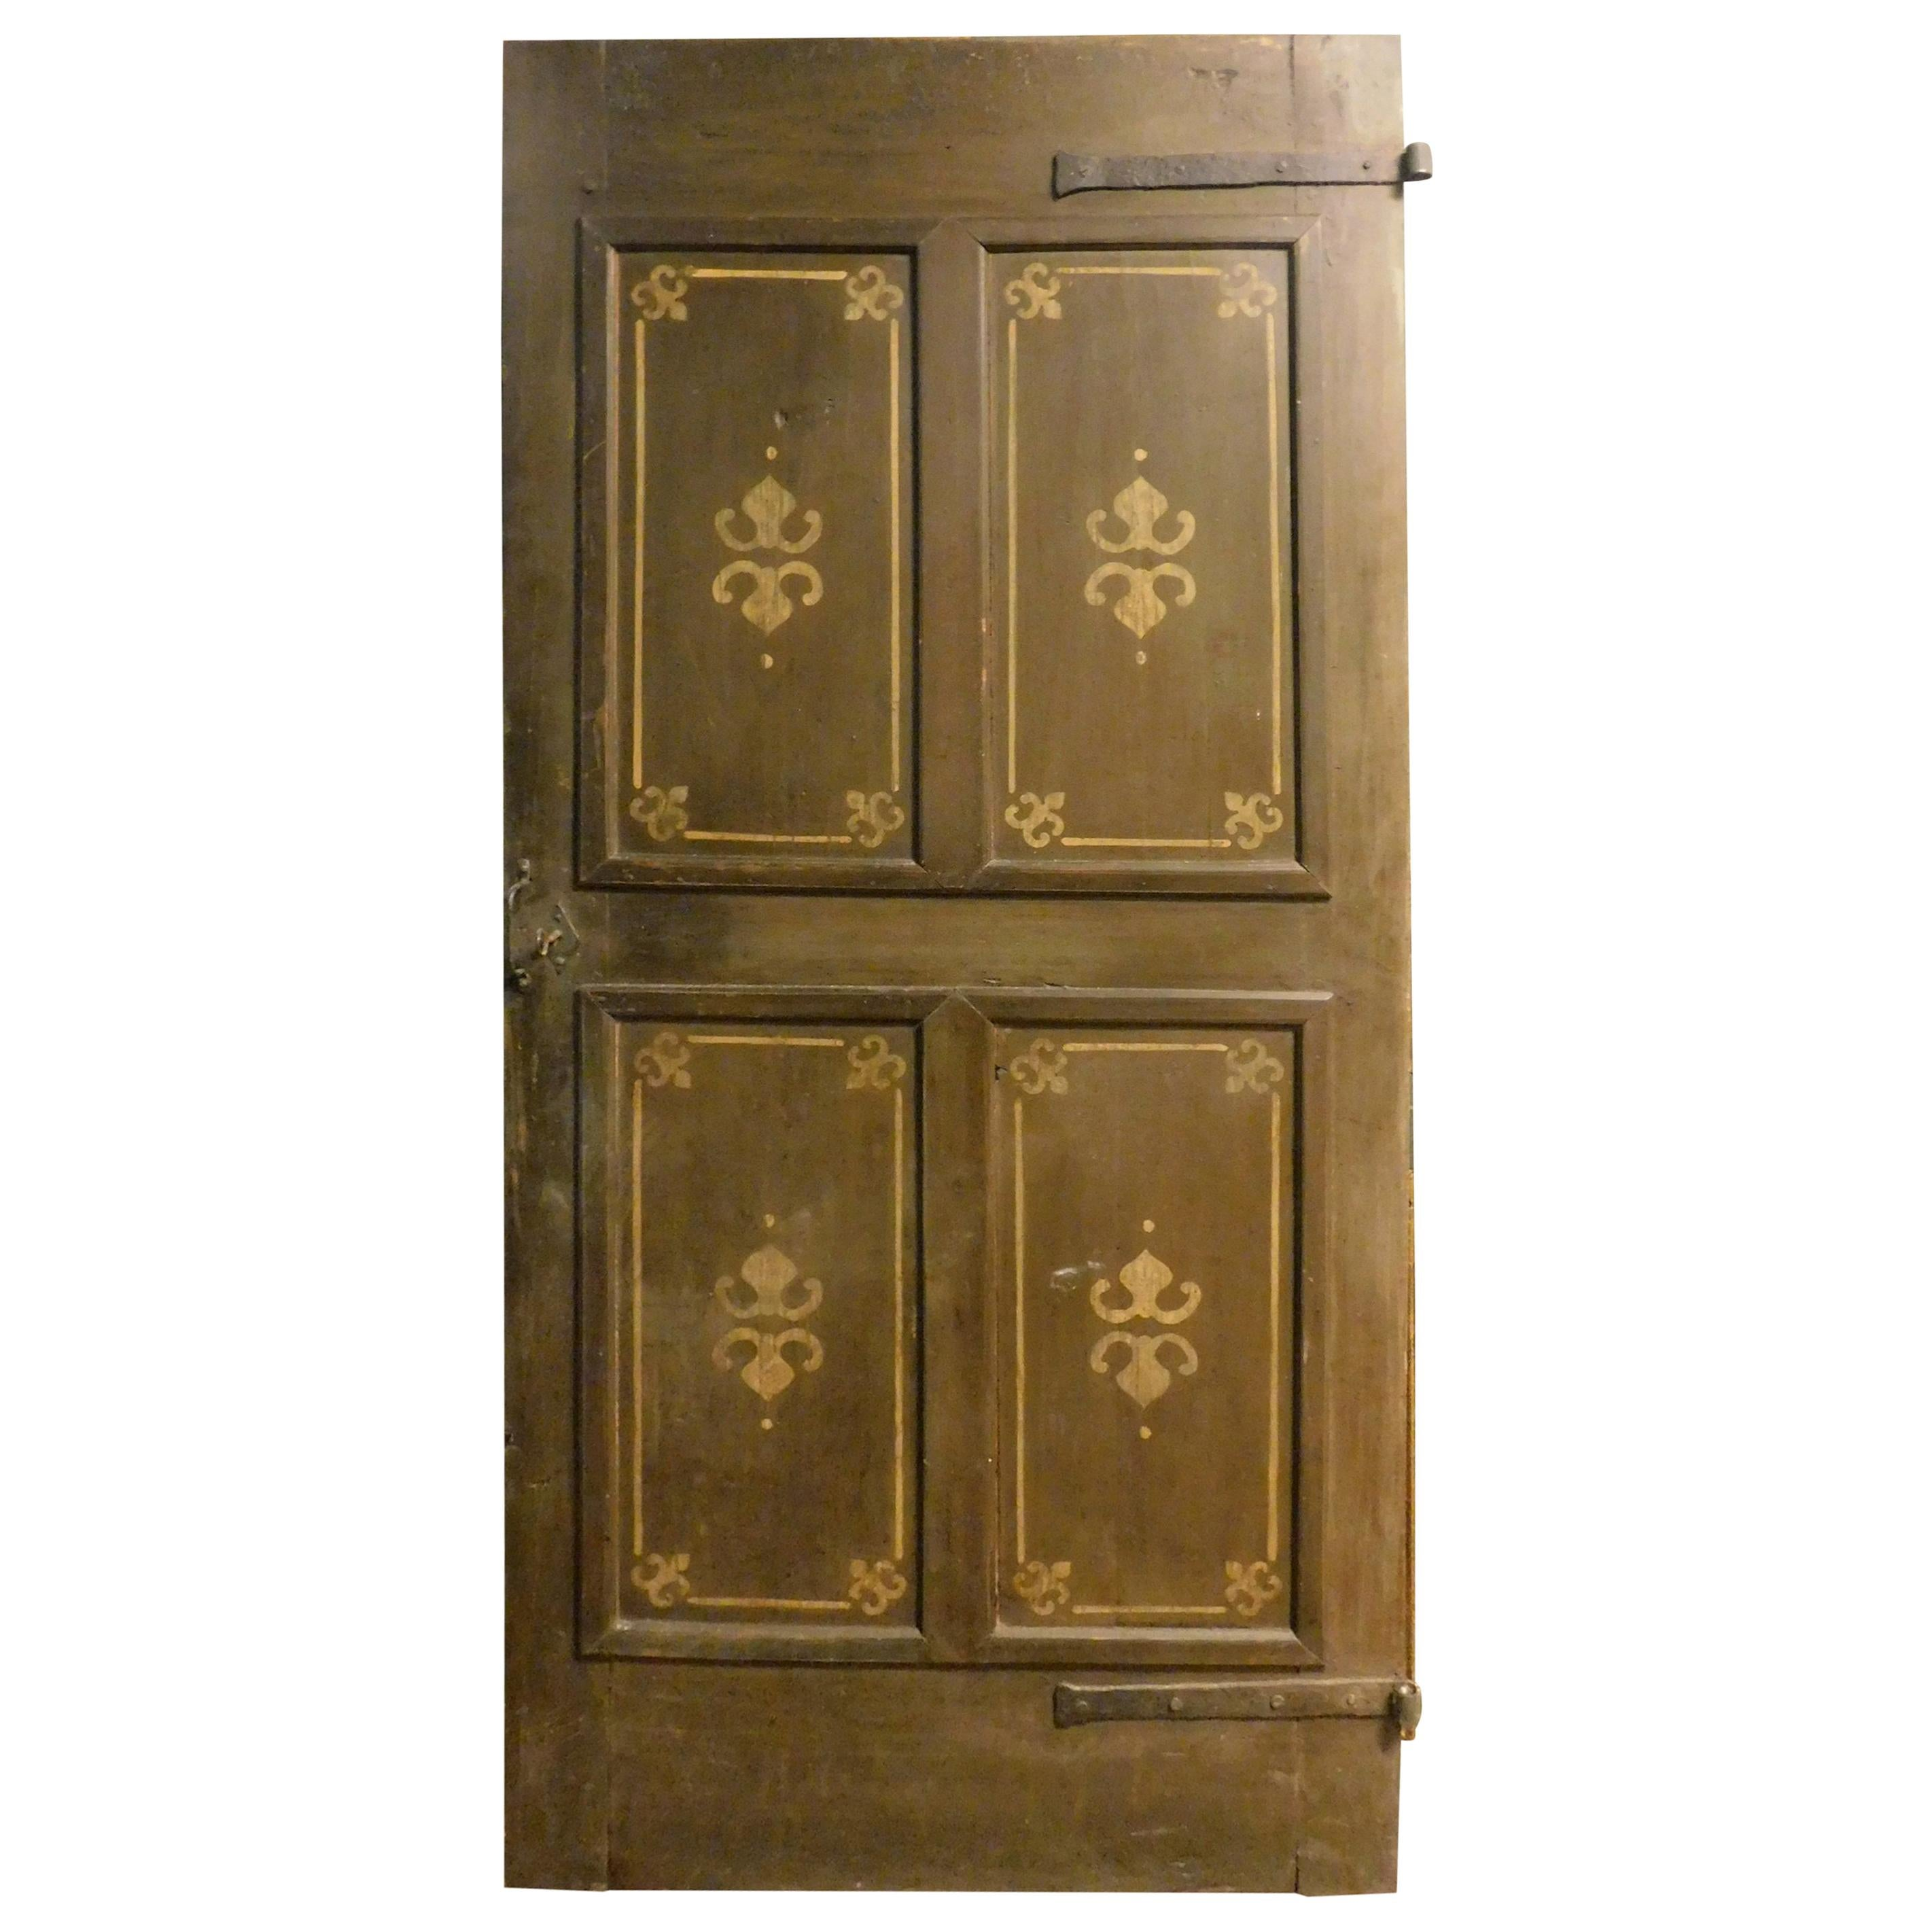 Antique Wooden Door with 4 Painted Panels, Rustic, 19th Century, Italy